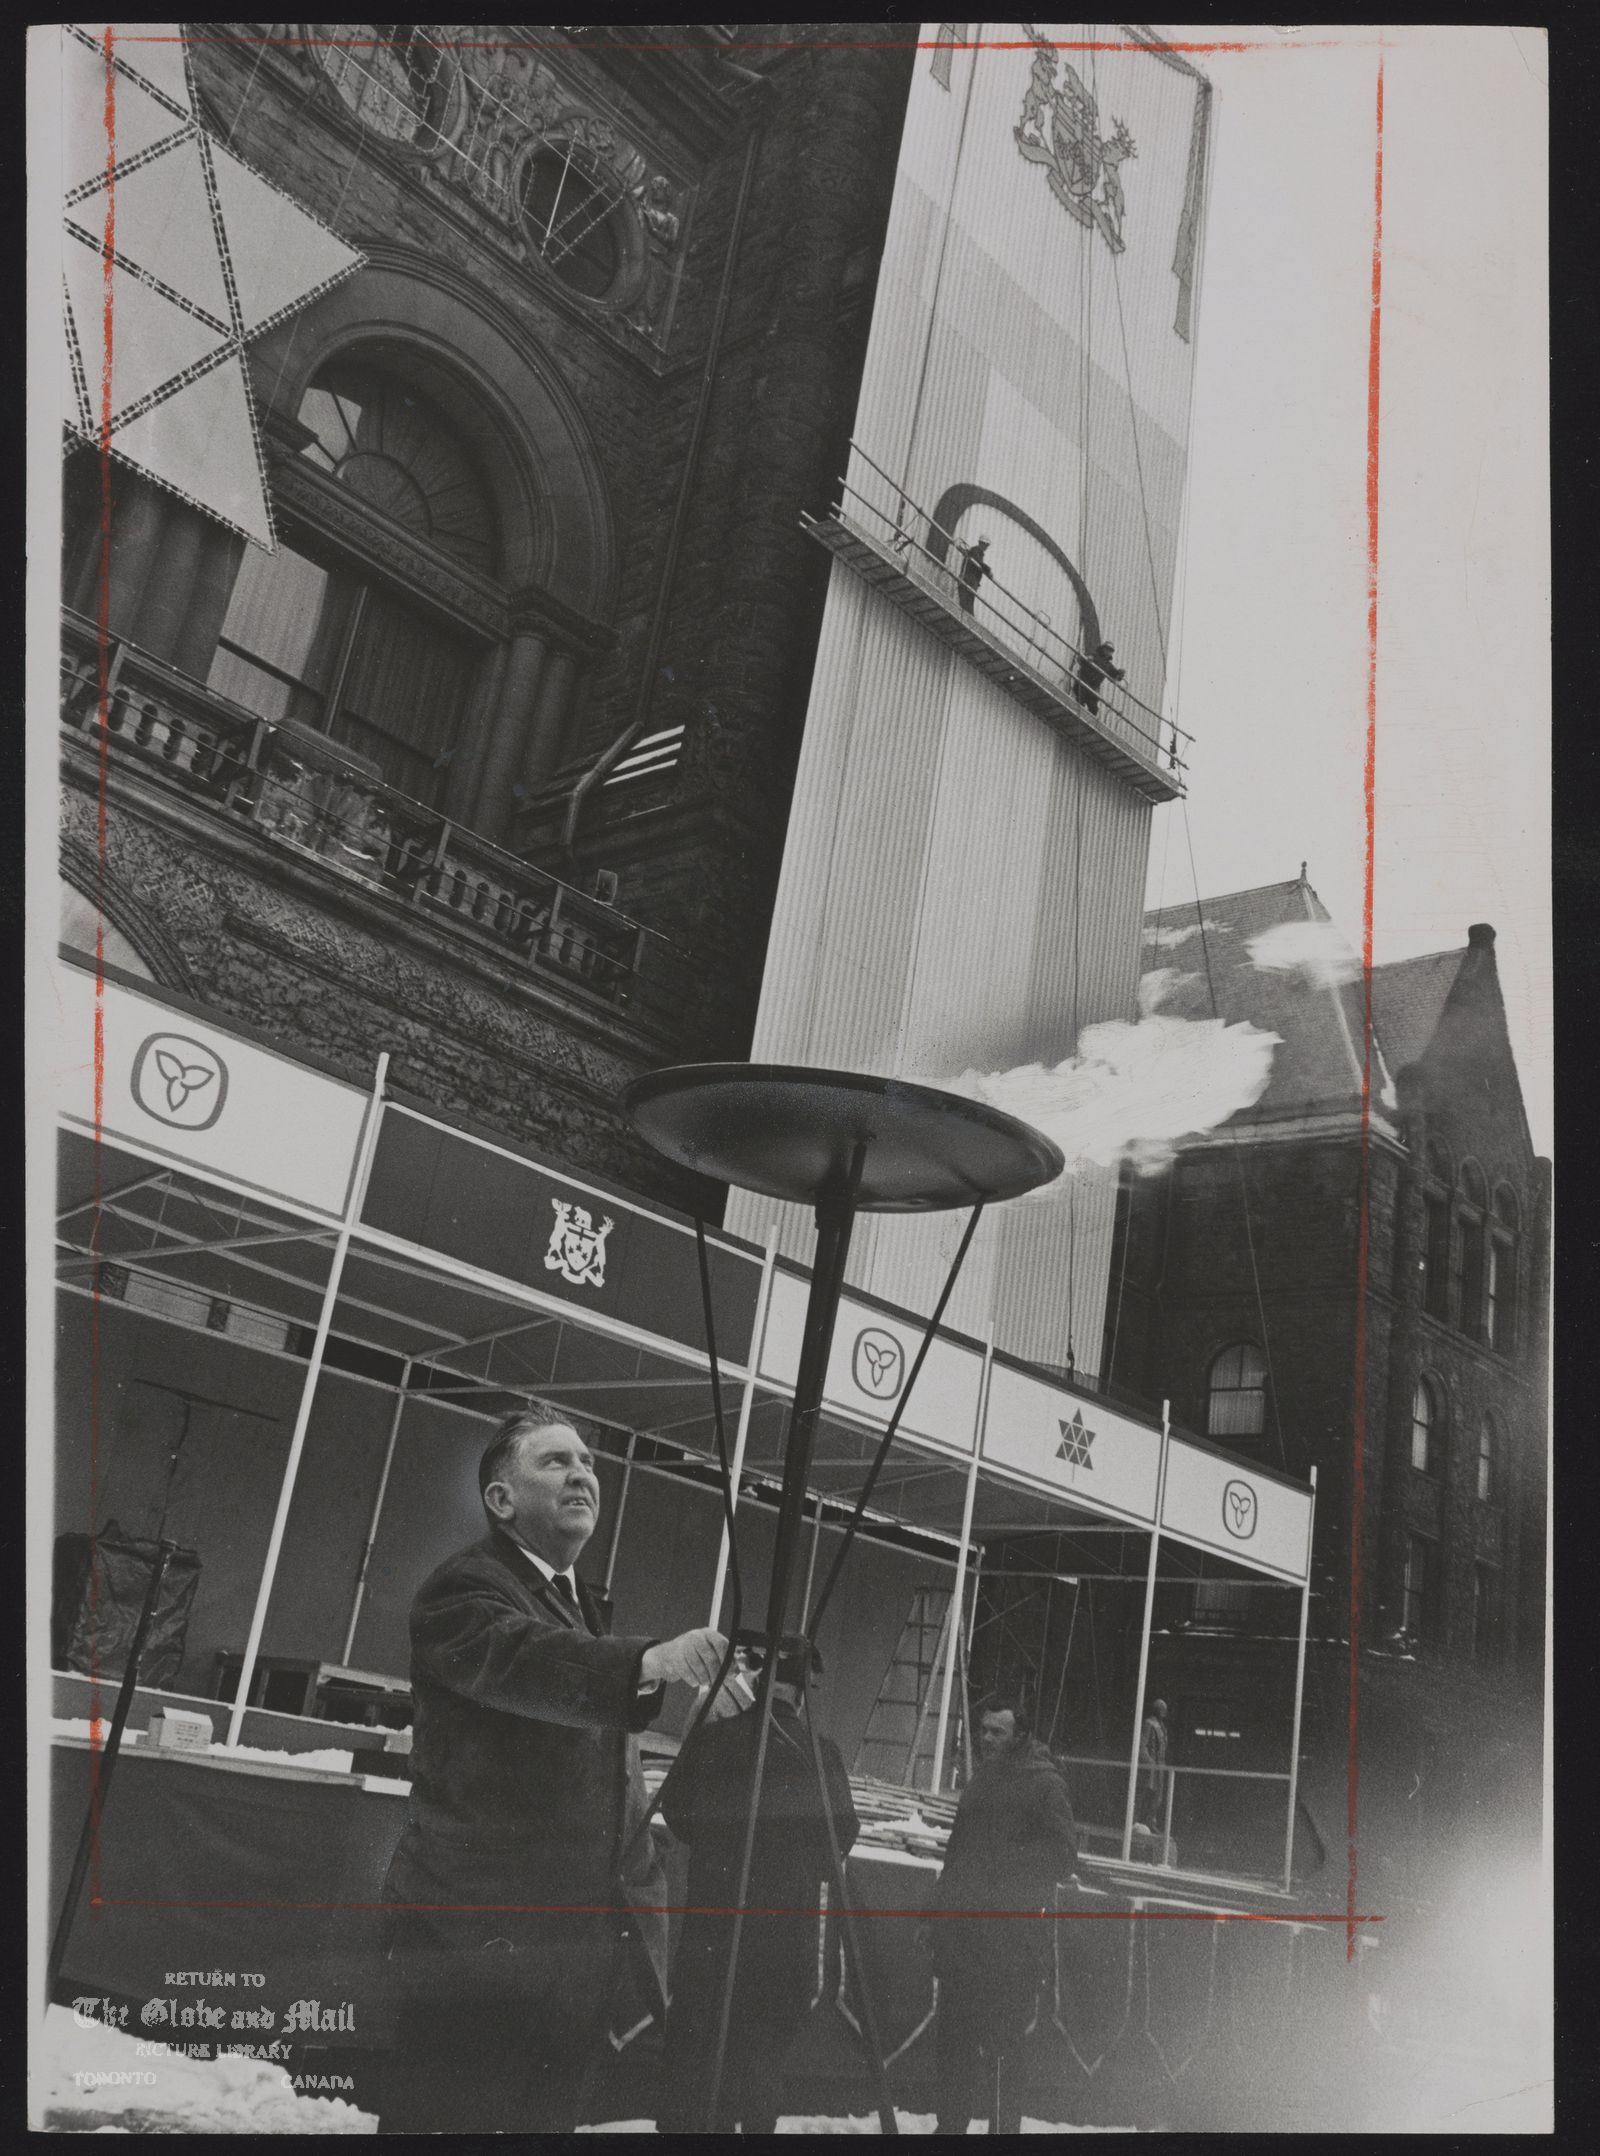 The notes transcribed from the back of this photograph are as follows: CANADA dominion Centennial J. B. Donaldson, tests perpetual flame that will be lit at Queen's Park on New Year's Eve while behind him workers decorate building for Saturday night's Salute to '67